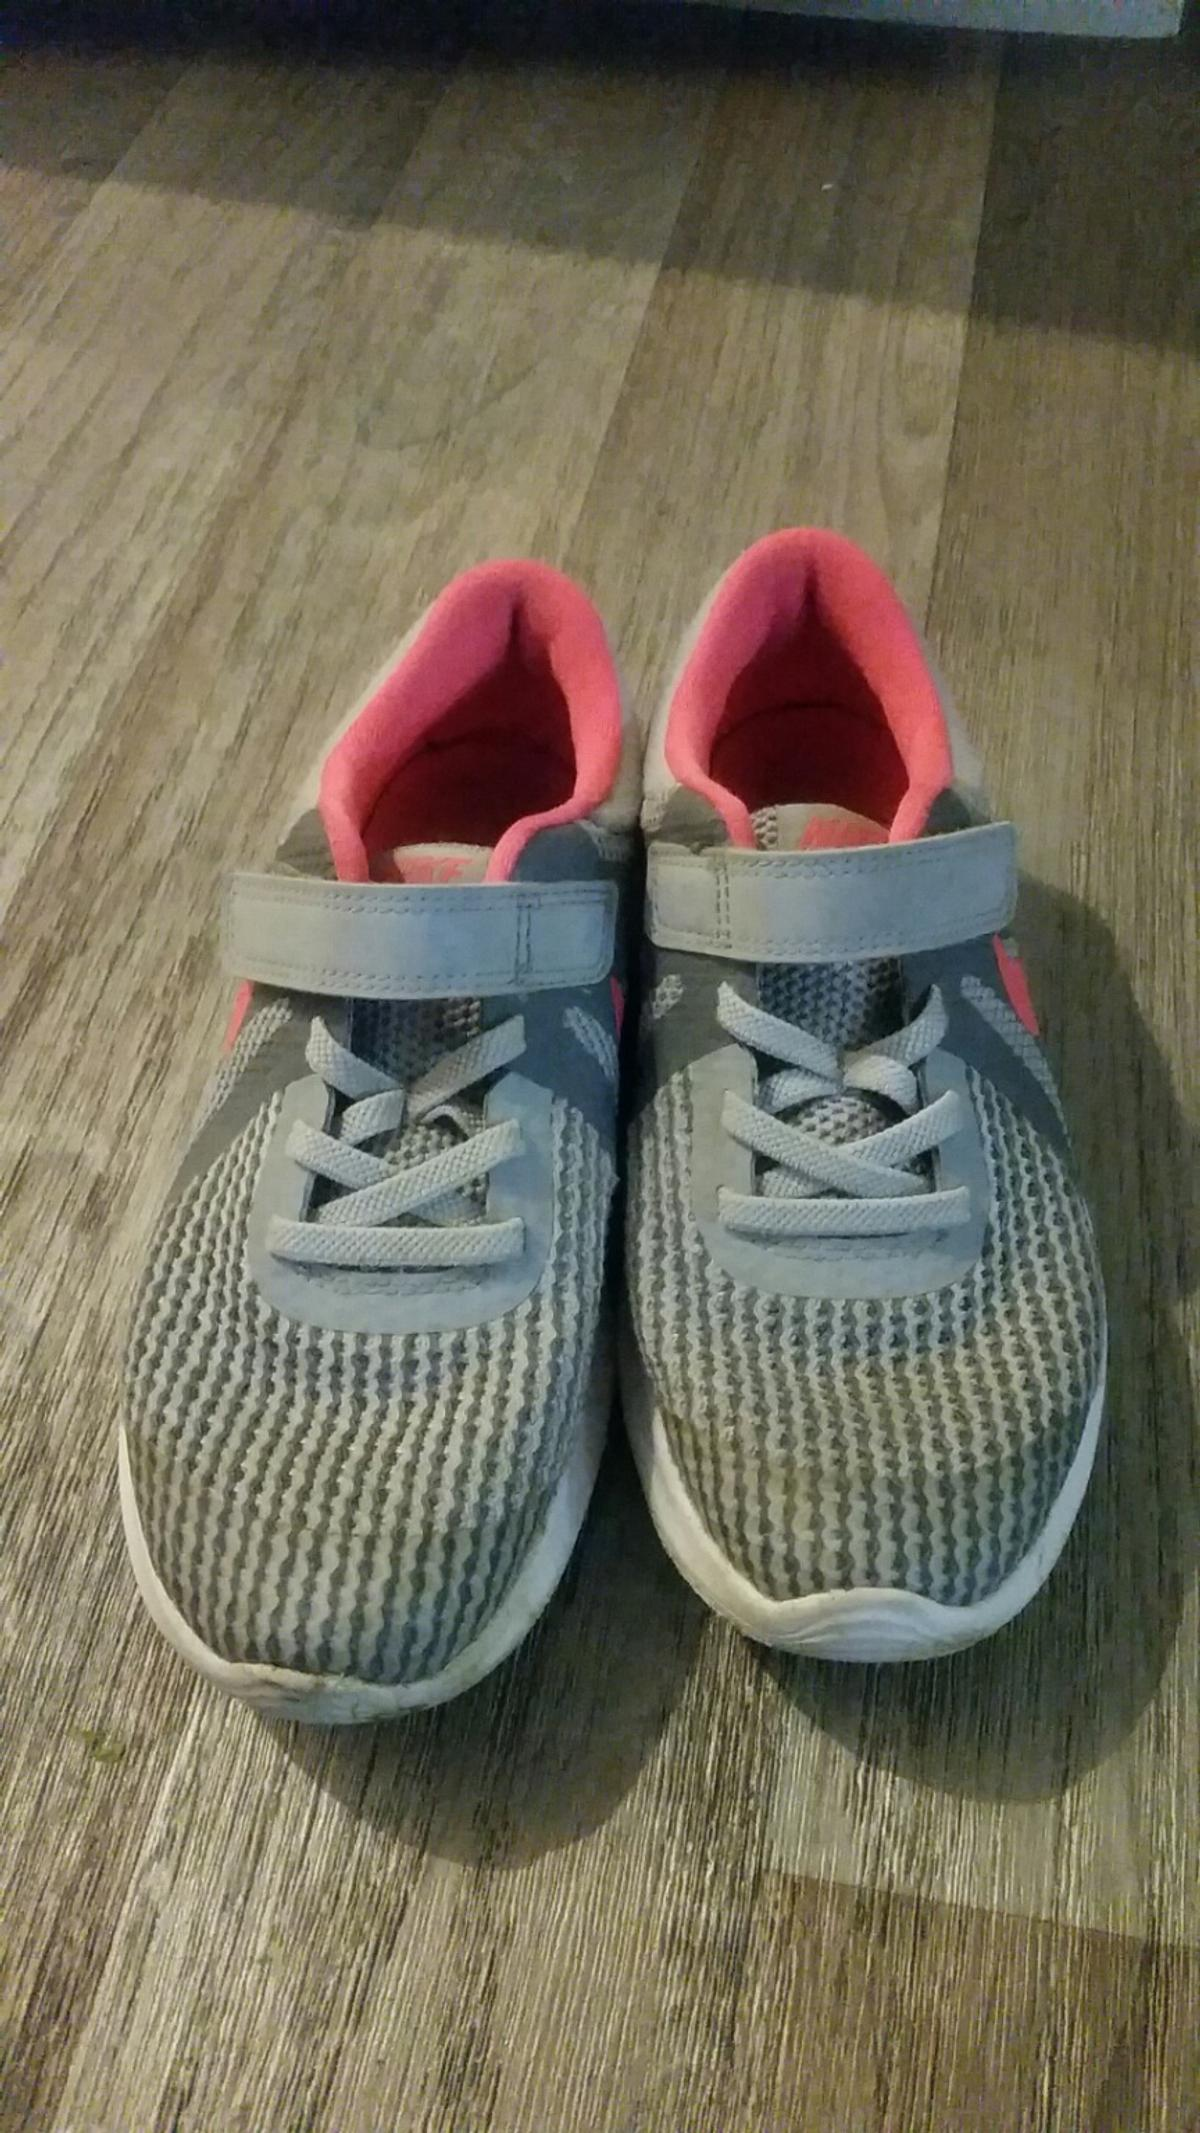 good condition size 1 girls velco nike trainers.pick up only